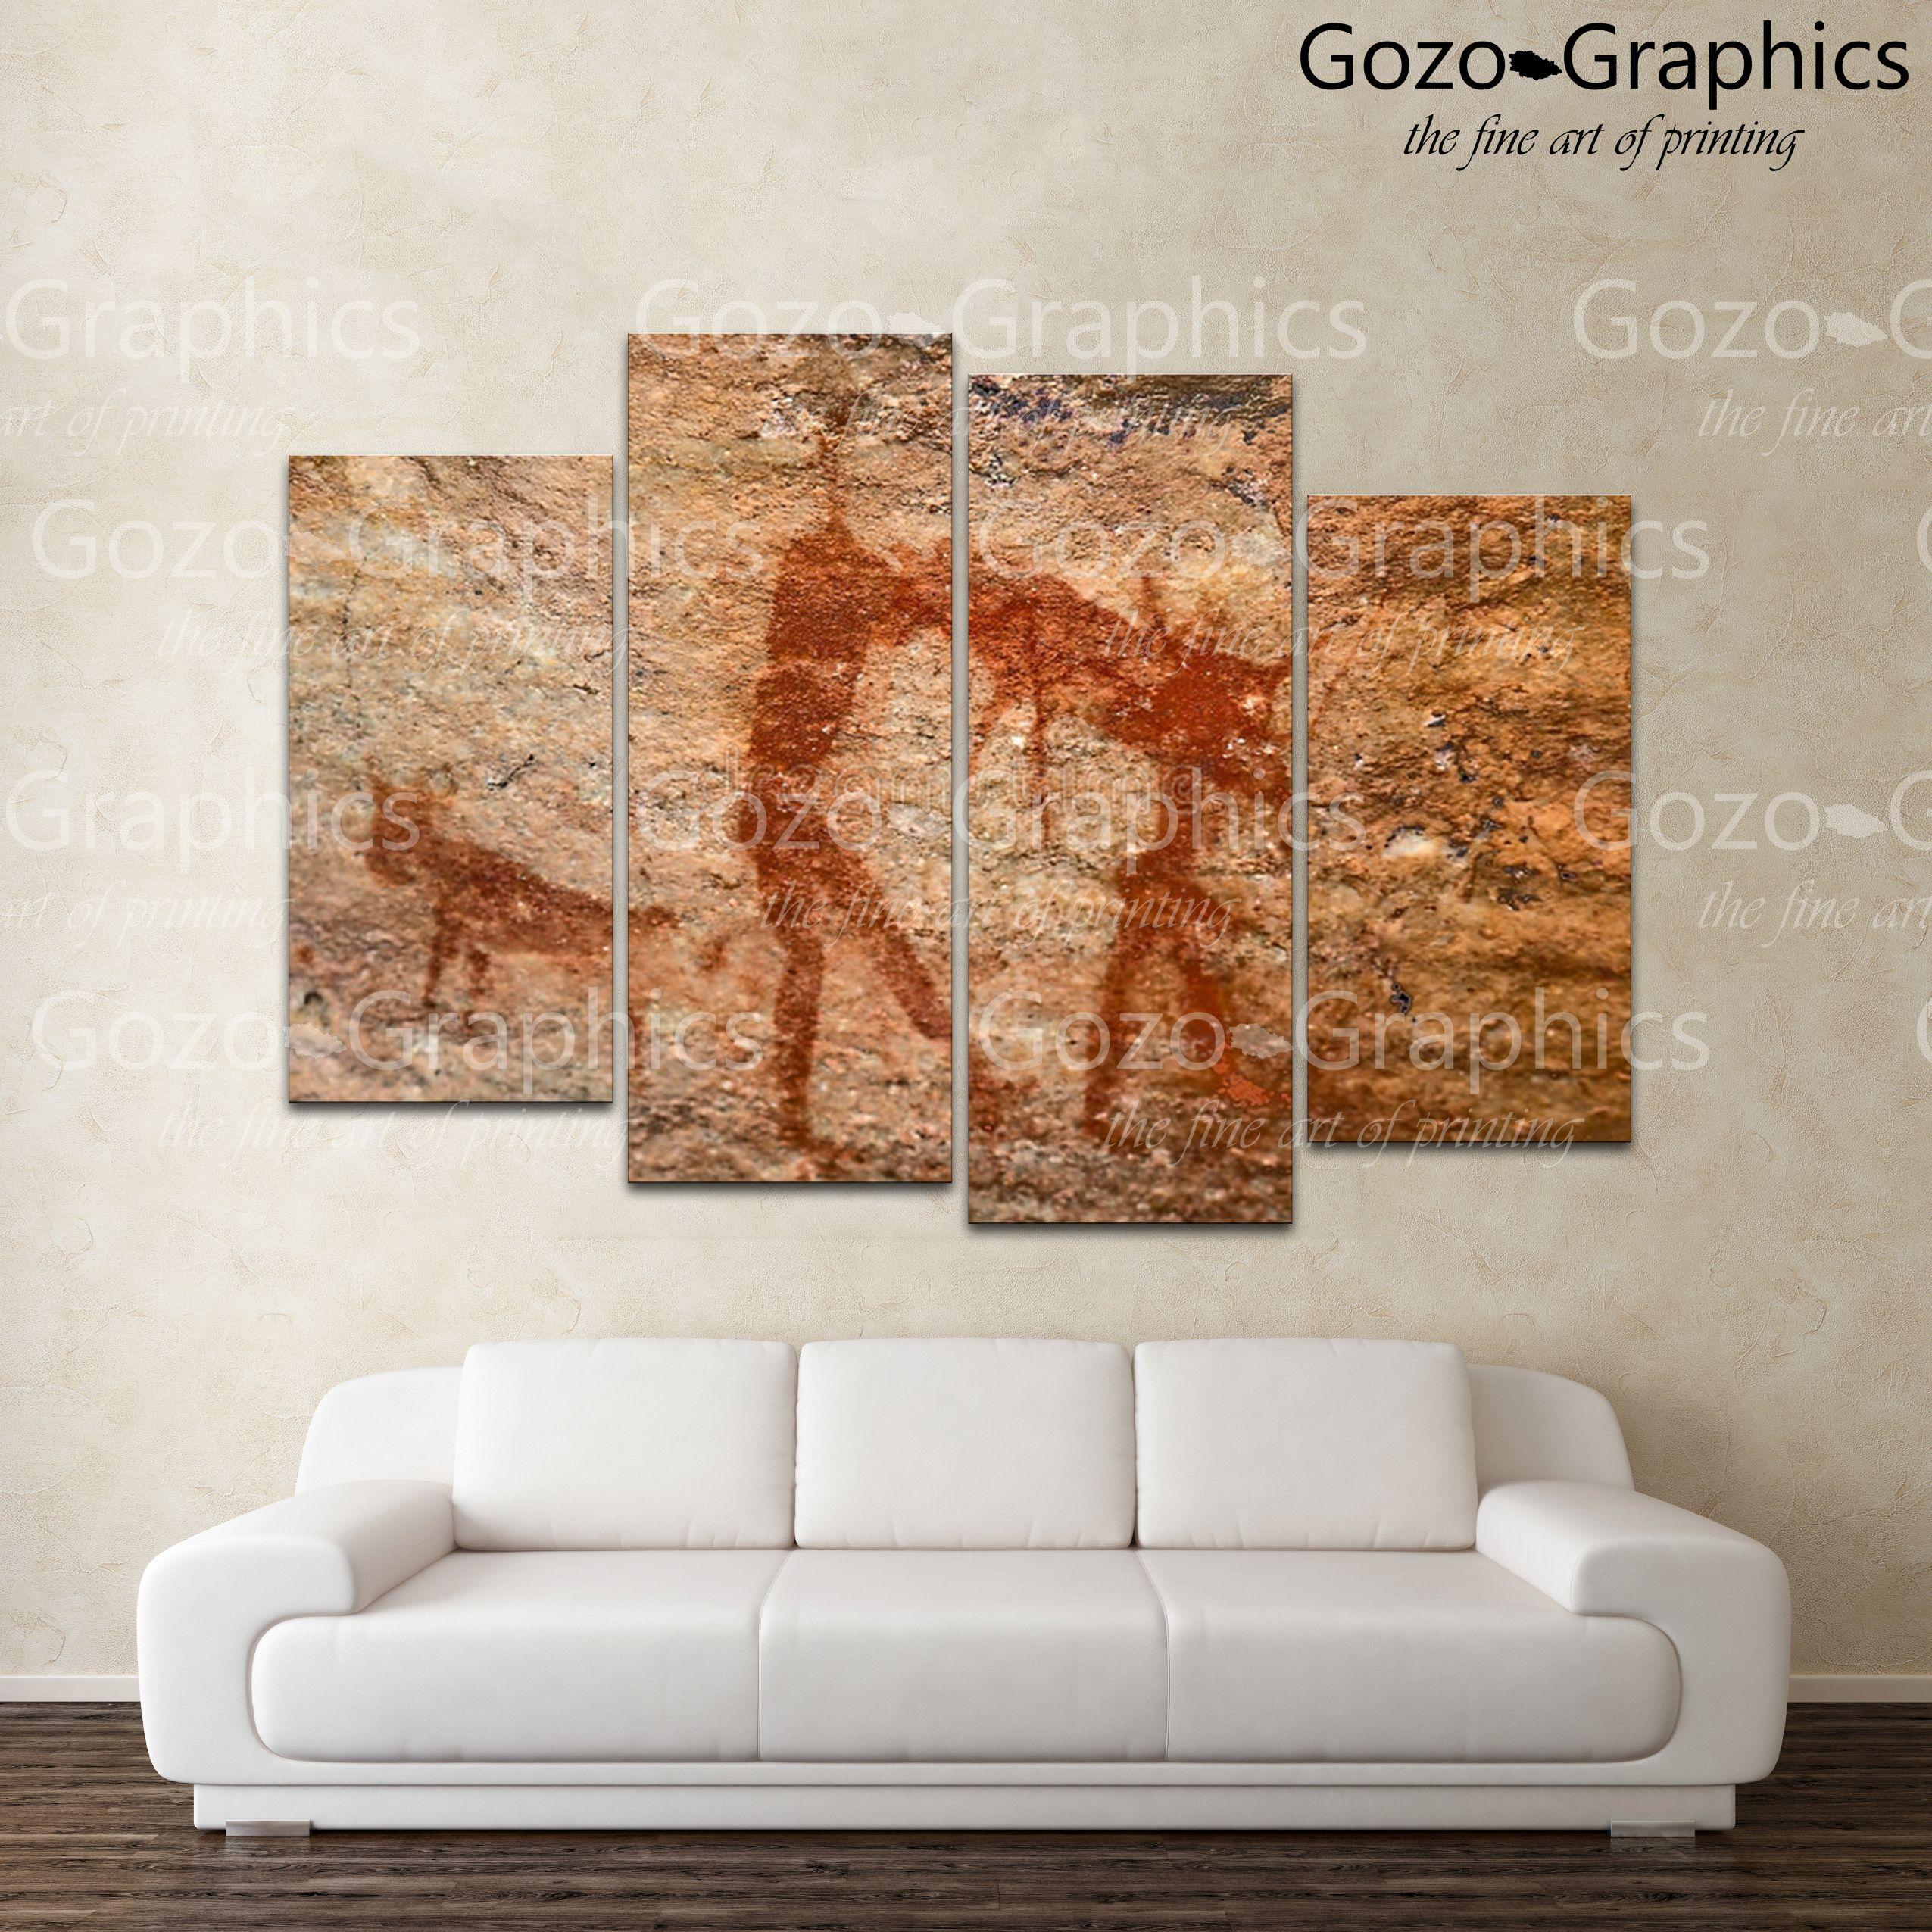 00929 Cave Painting Gozo Graphics